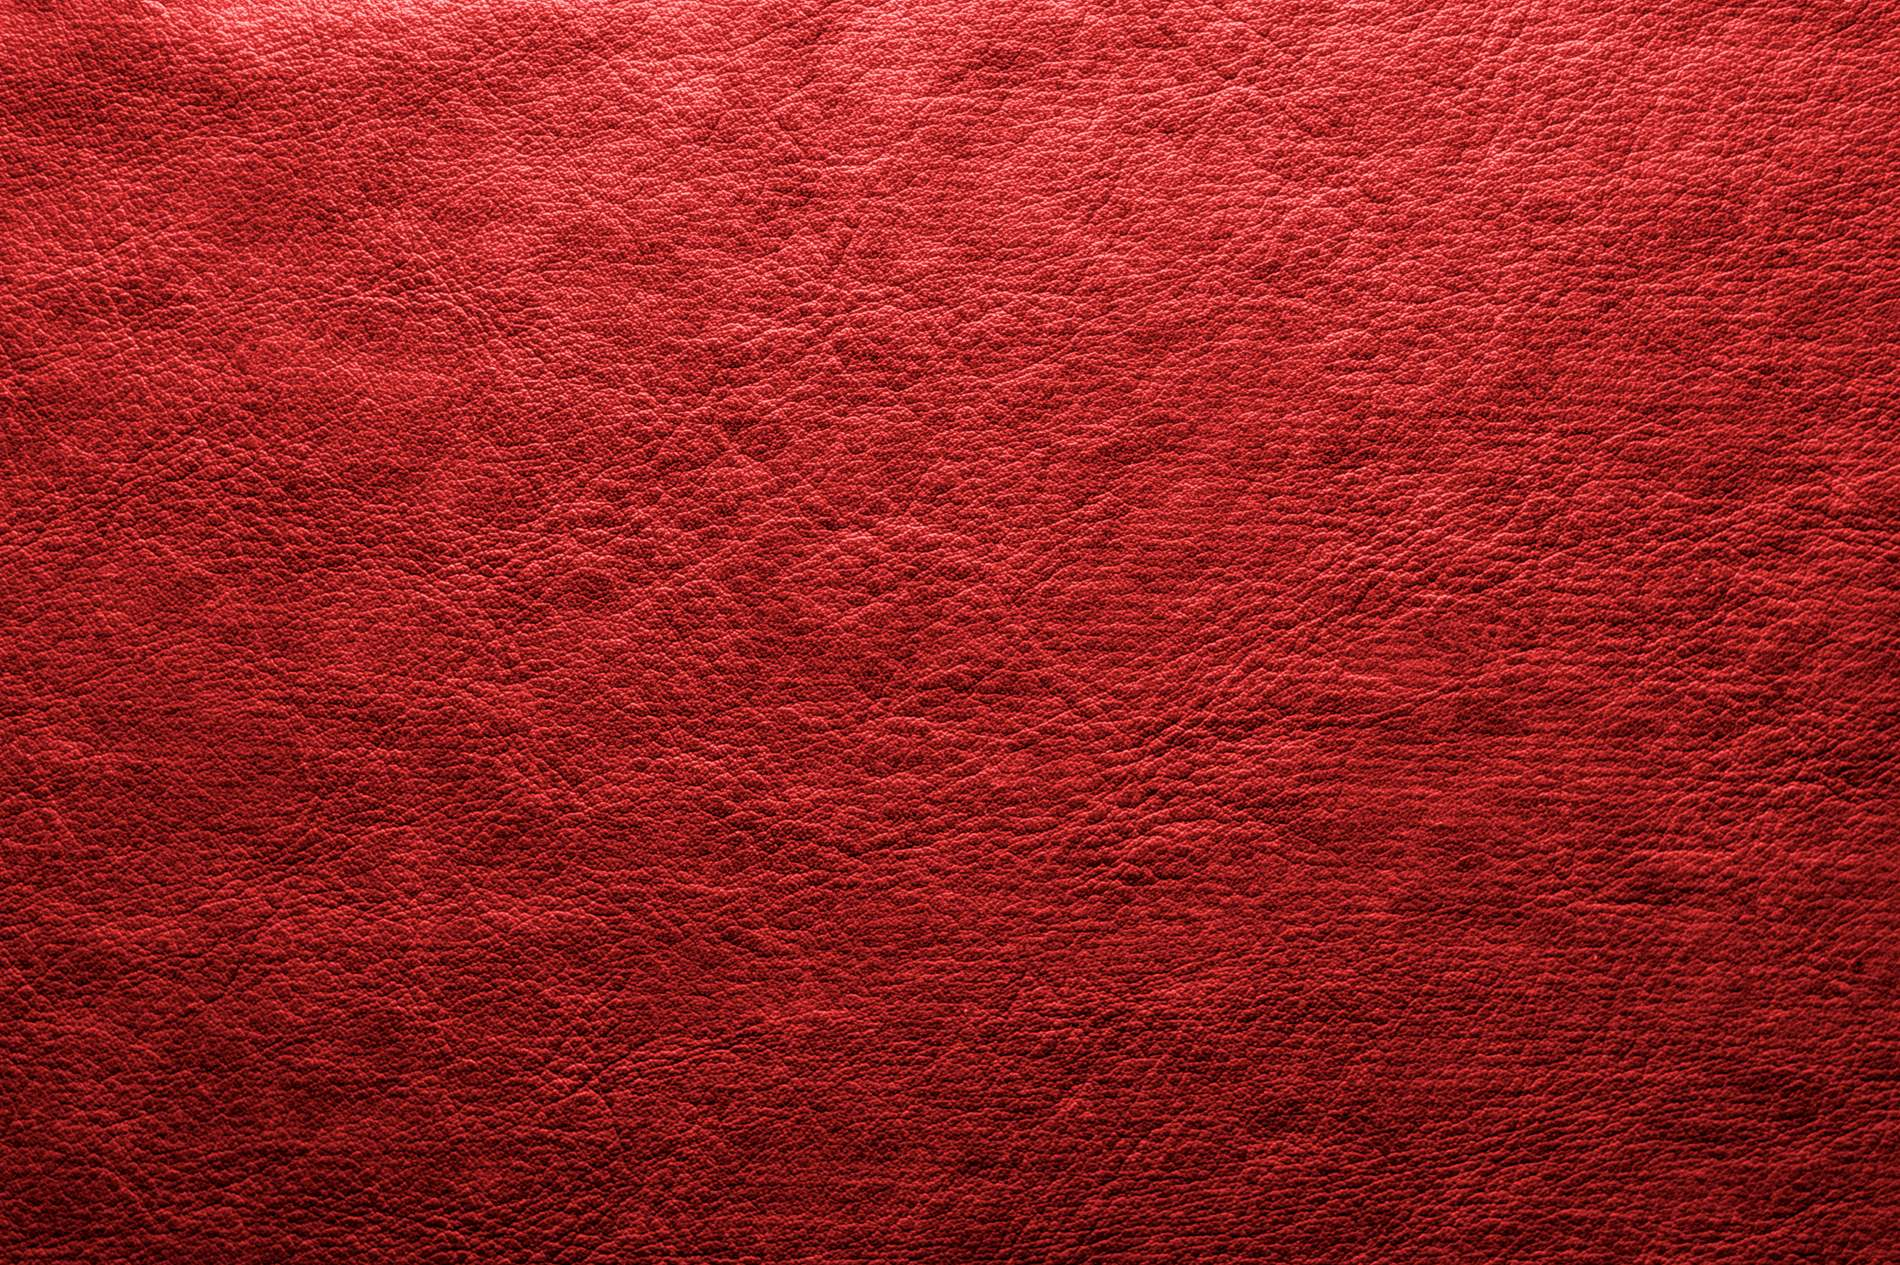 abstract red leather background photohdx